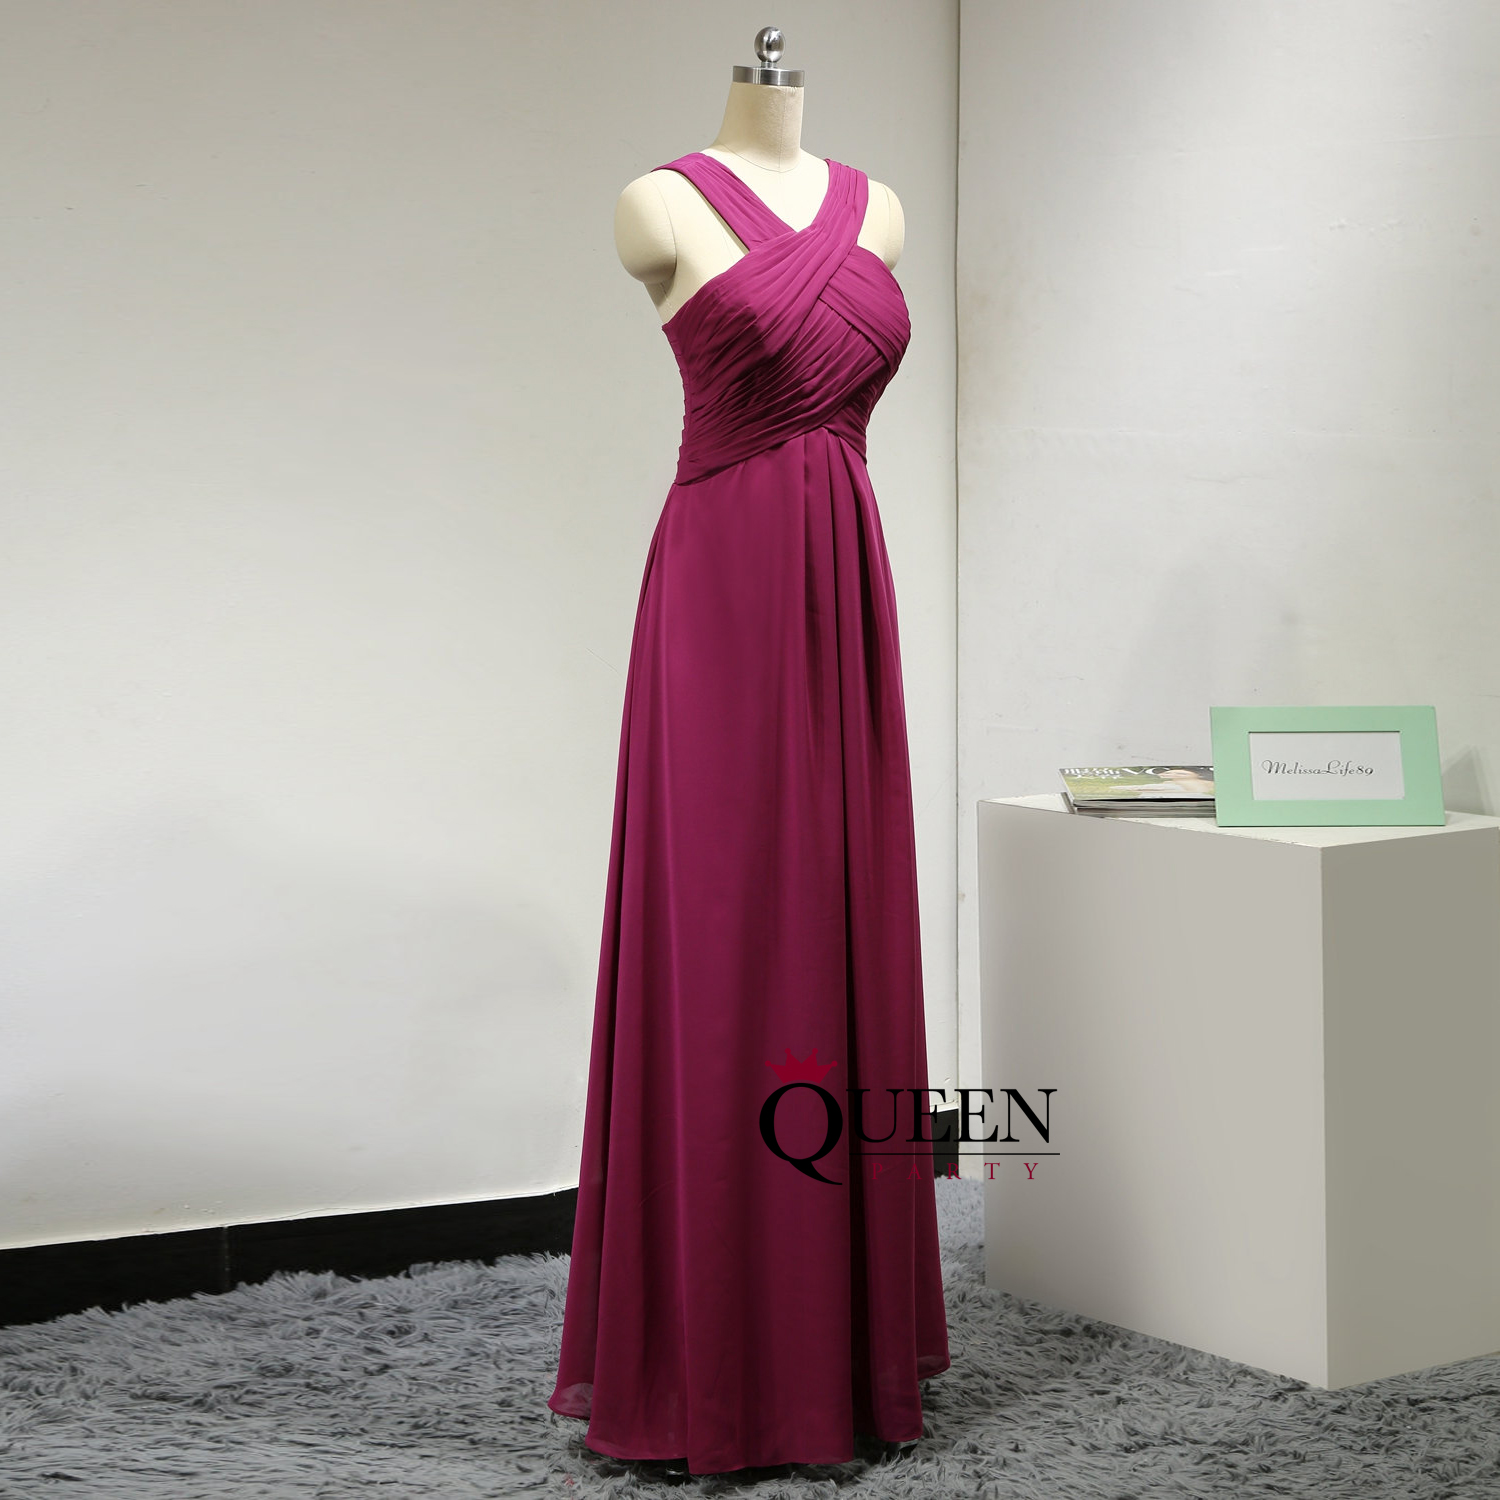 Burgundy chiffon cross halter long bridesmaid dresses full length burgundy chiffon cross halter long bridesmaid dresses full length prom dress with ruched bust ombrellifo Gallery